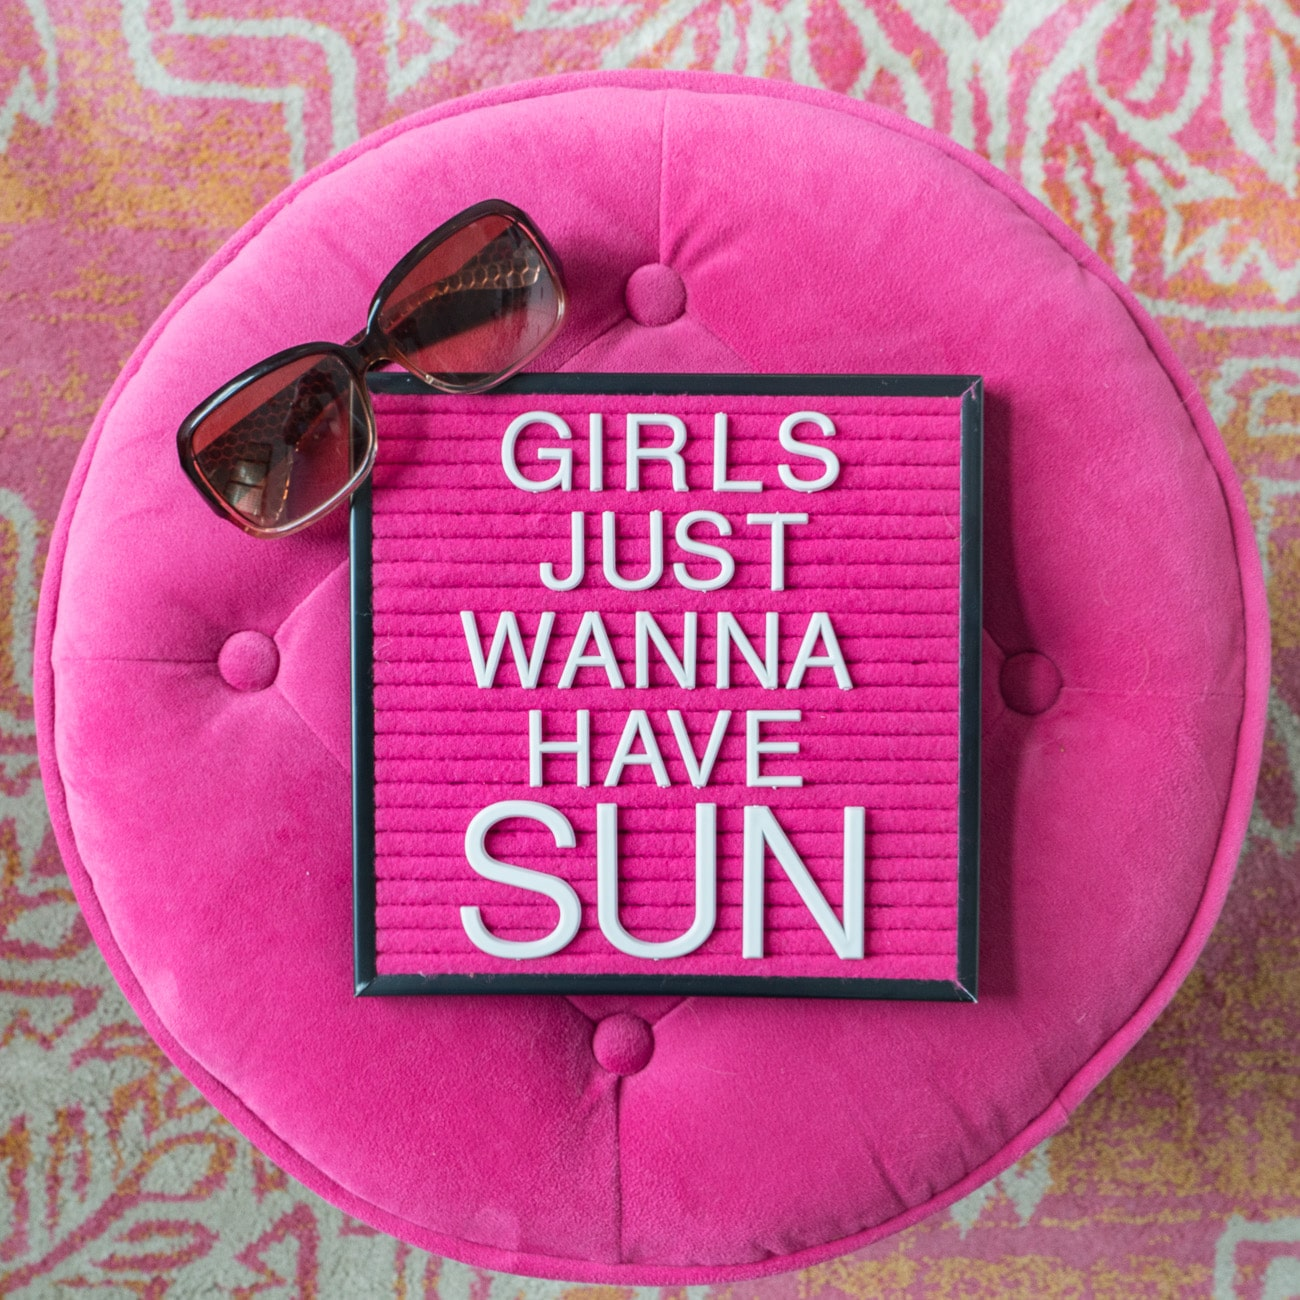 """Pink round ottoman with pink letterboard saying """"Girls Just Wanna Have Sun"""""""